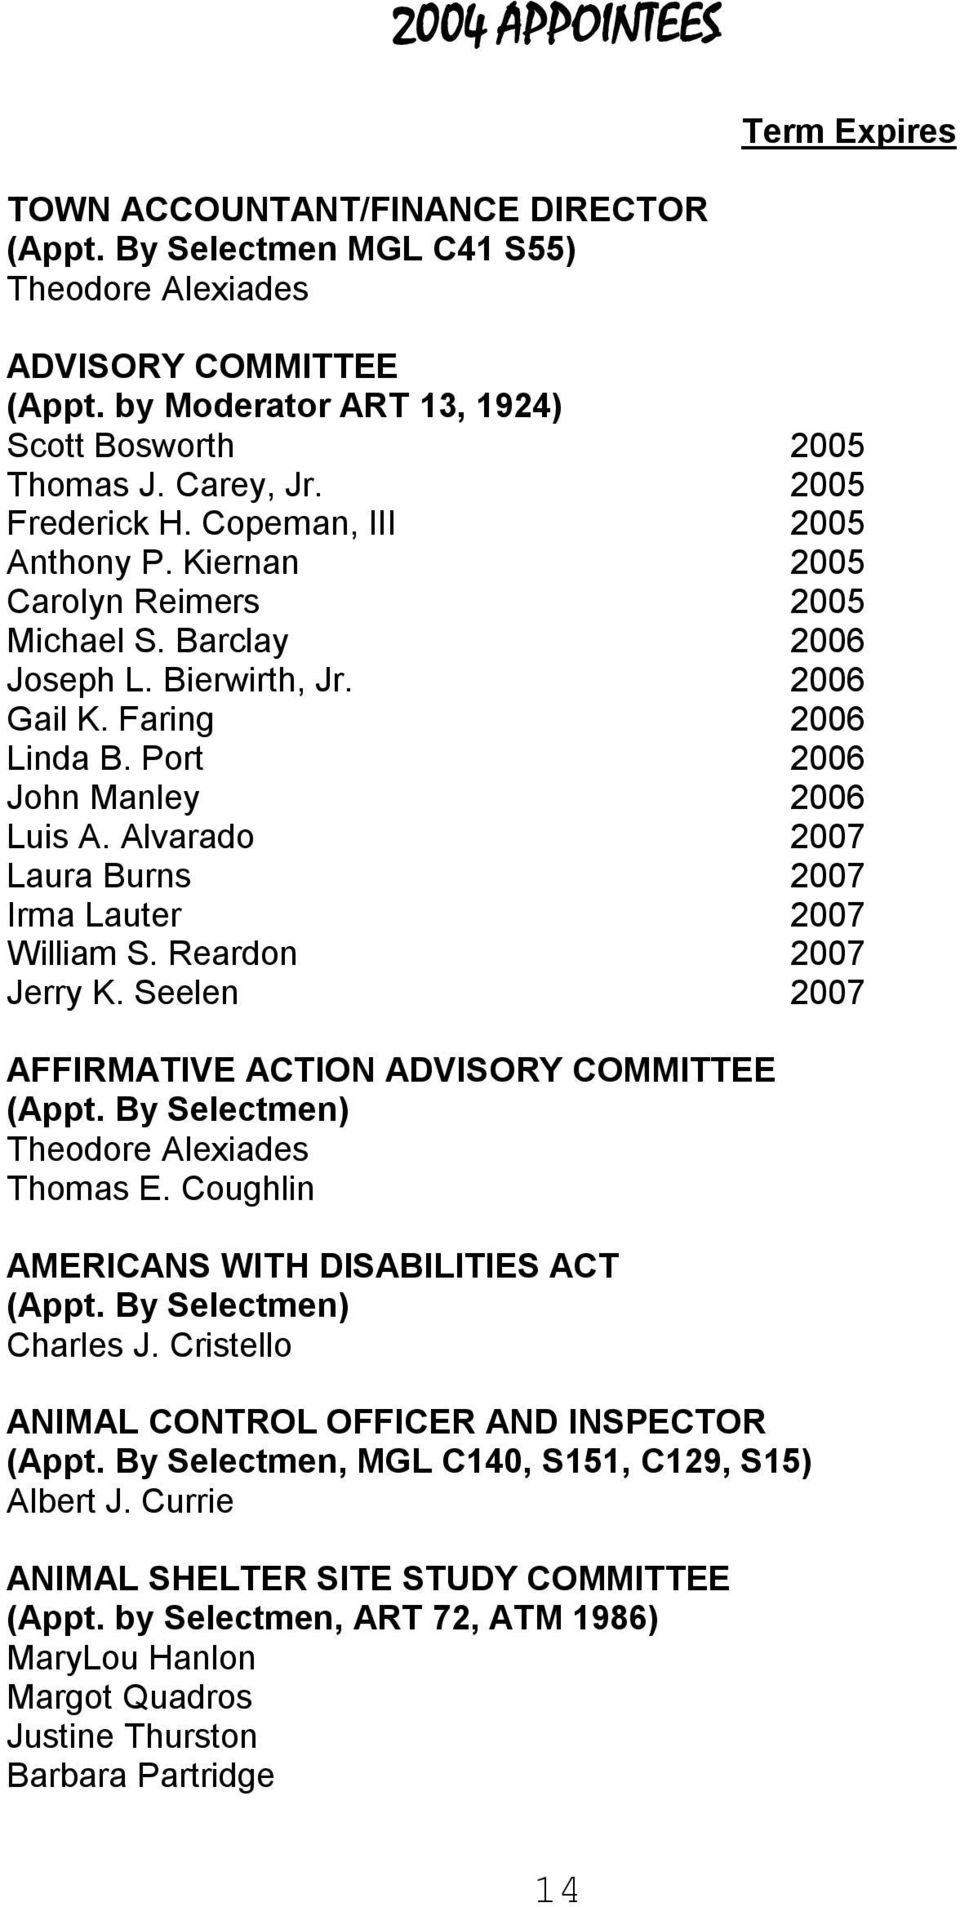 Port 2006 John Manley 2006 Luis A. Alvarado 2007 Laura Burns 2007 Irma Lauter 2007 William S. Reardon 2007 Jerry K. Seelen 2007 AFFIRMATIVE ACTION ADVISORY COMMITTEE (Appt.